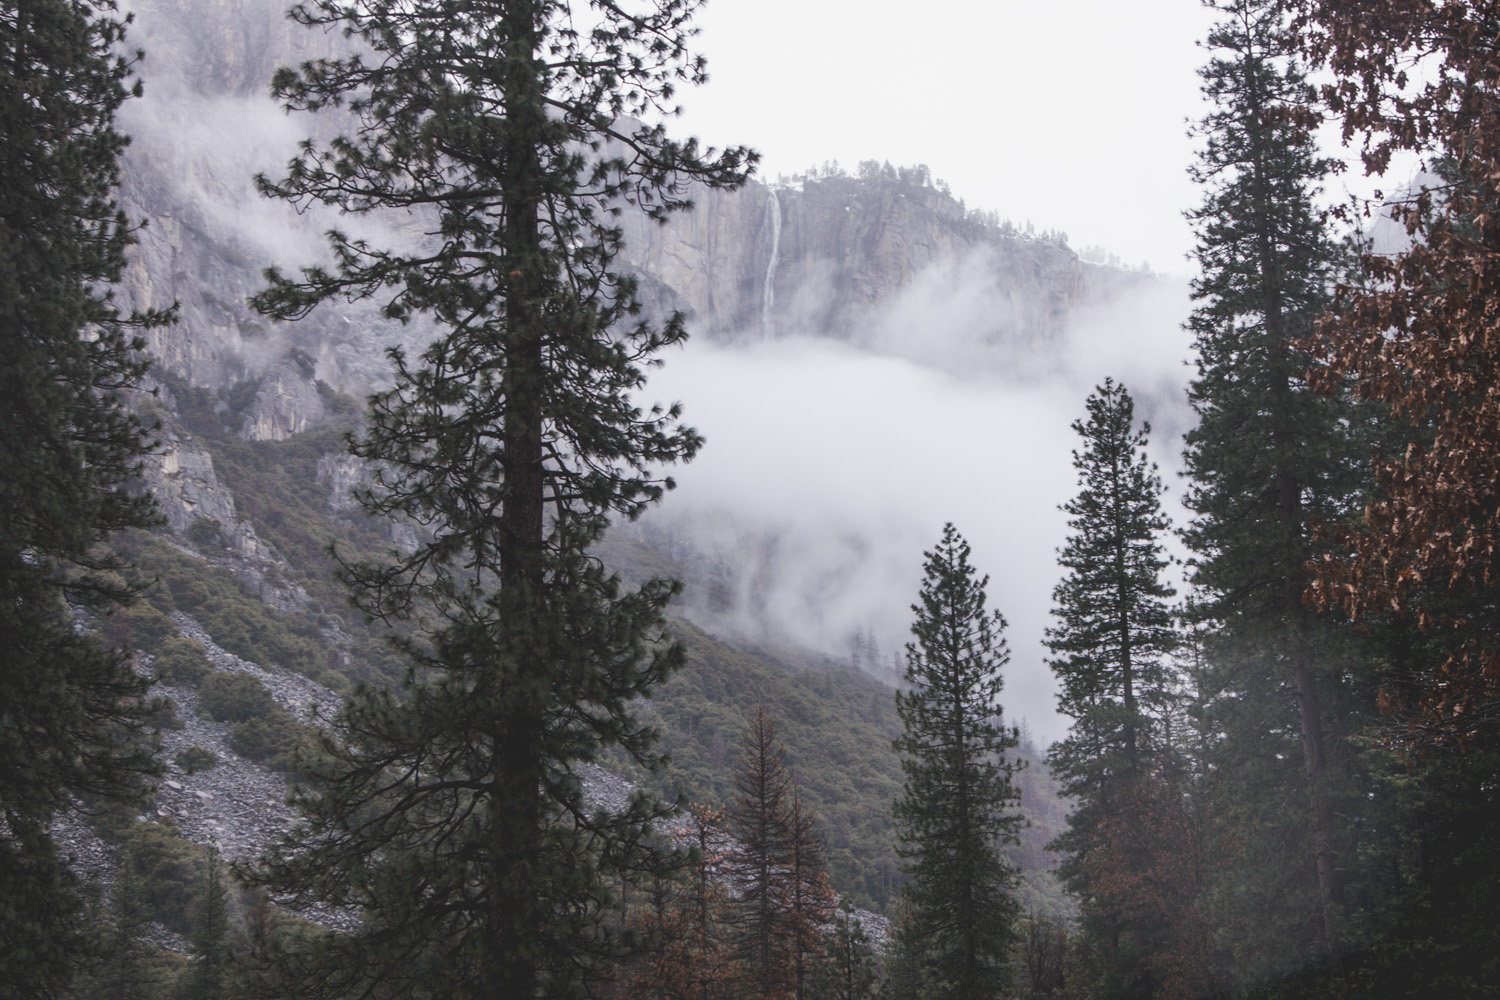 Fog in the trees in Yosemite in winter against tall cliffs